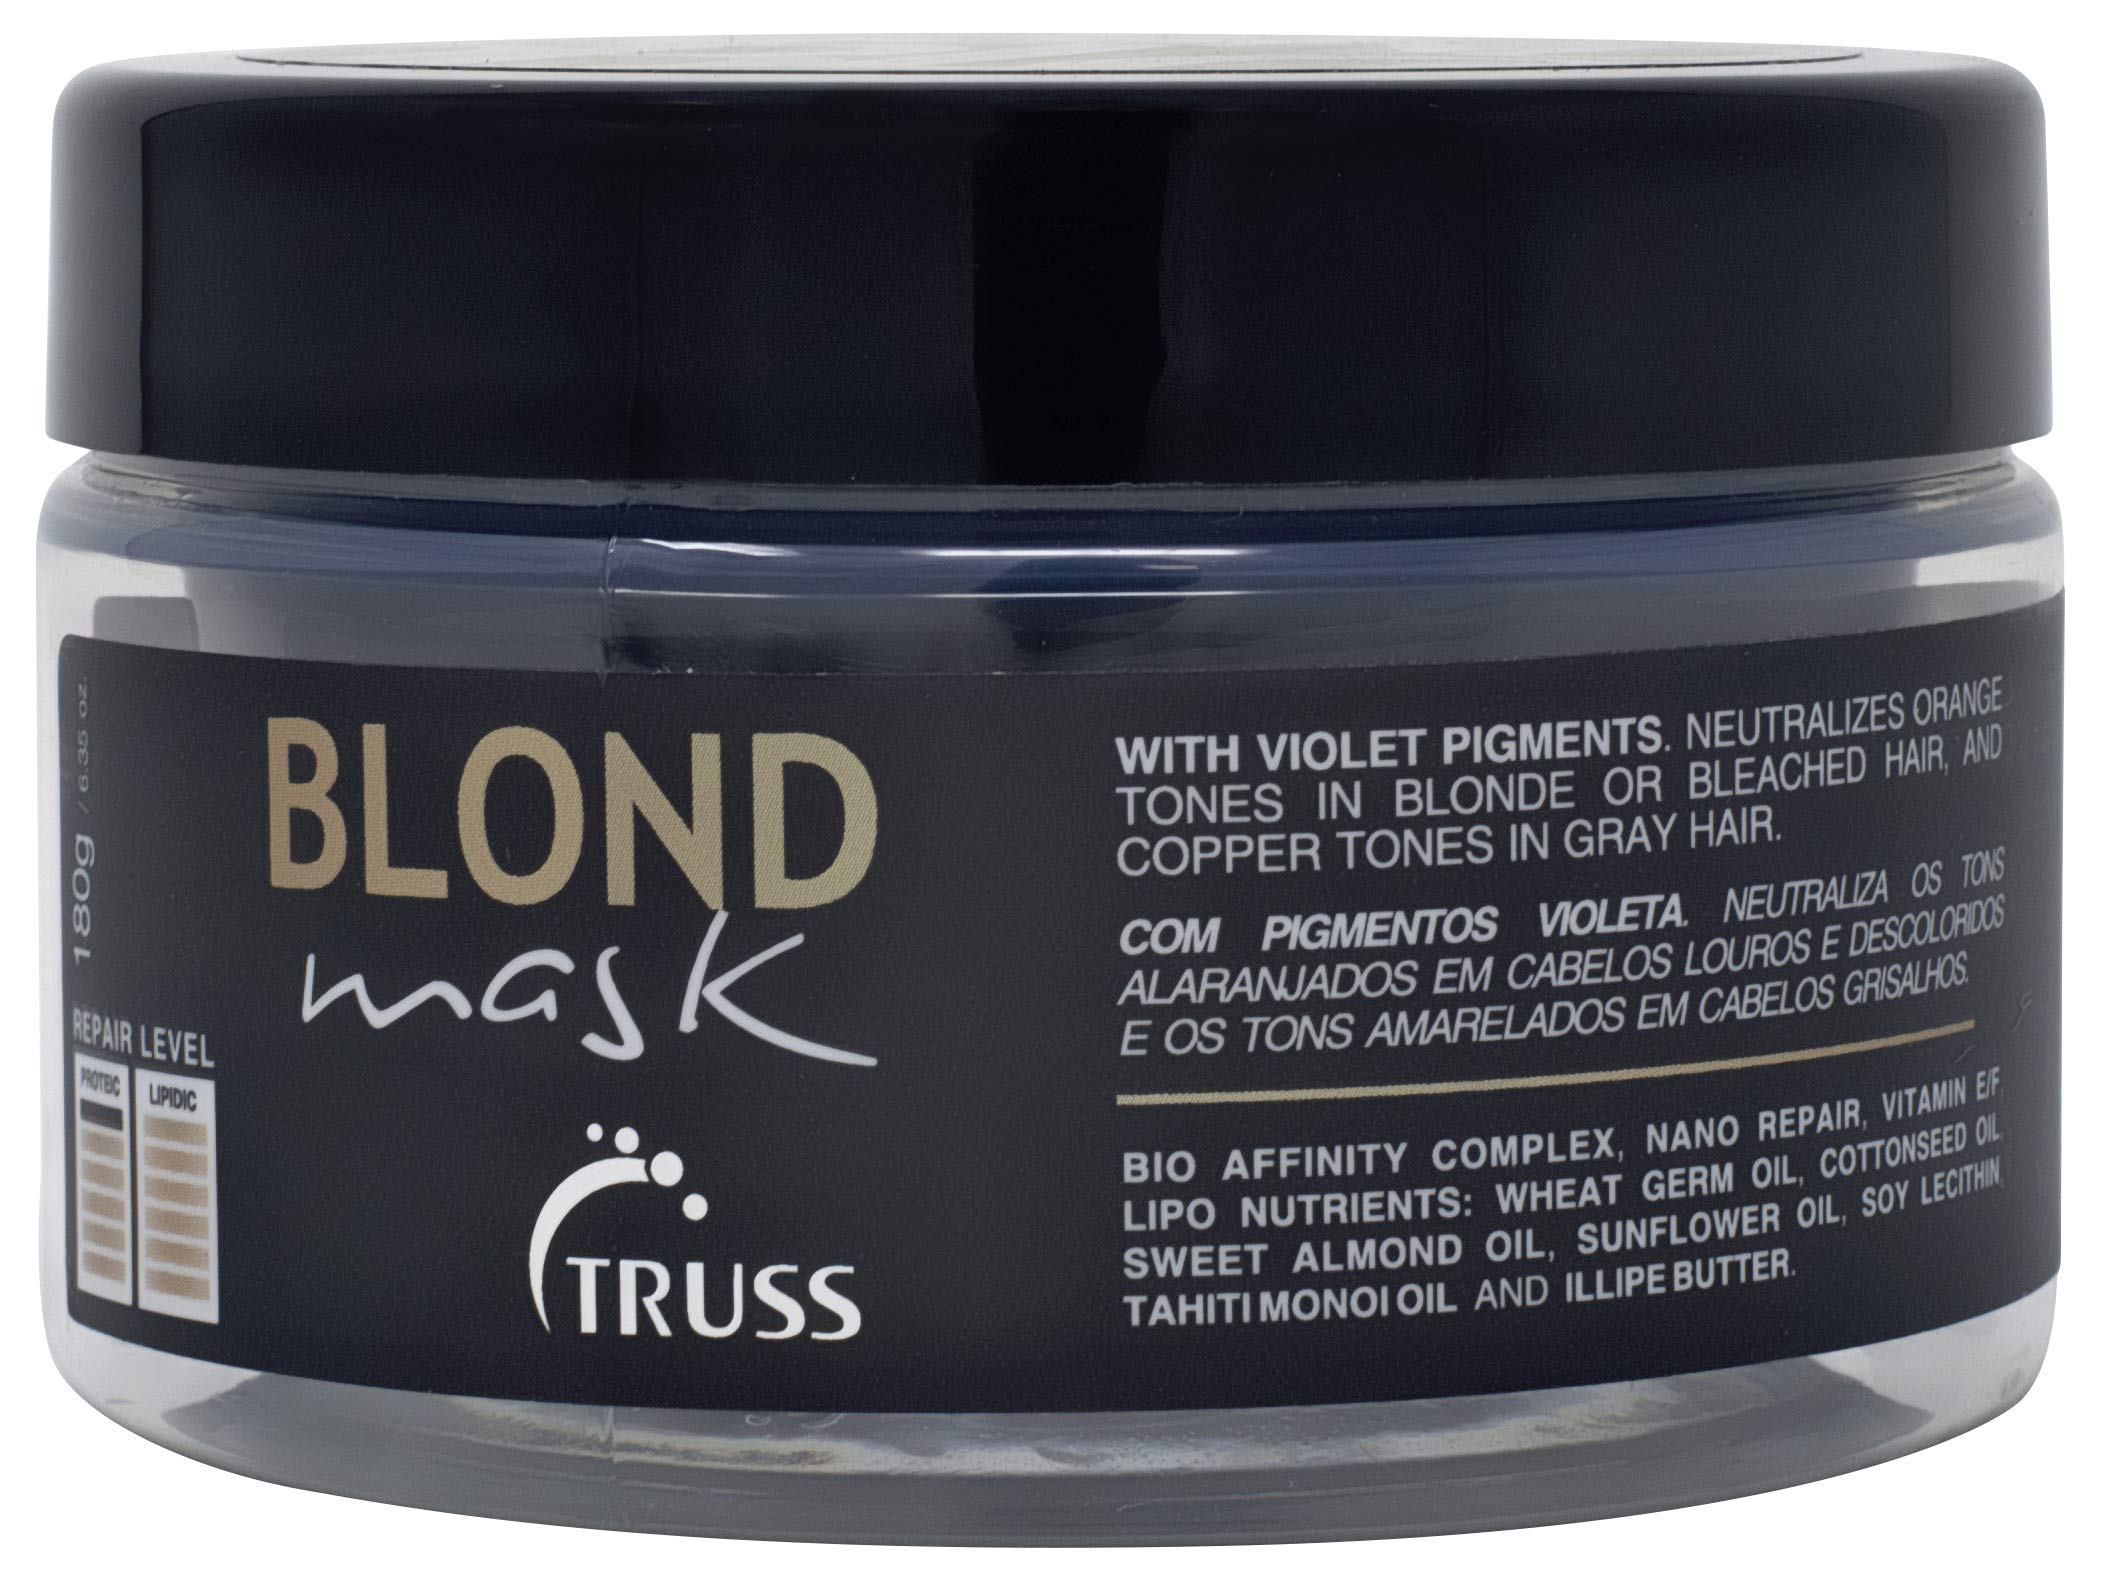 Truss Blond Mask - Hair Mask Treatment for Blonde, Bleached and Gray Hair - Violet